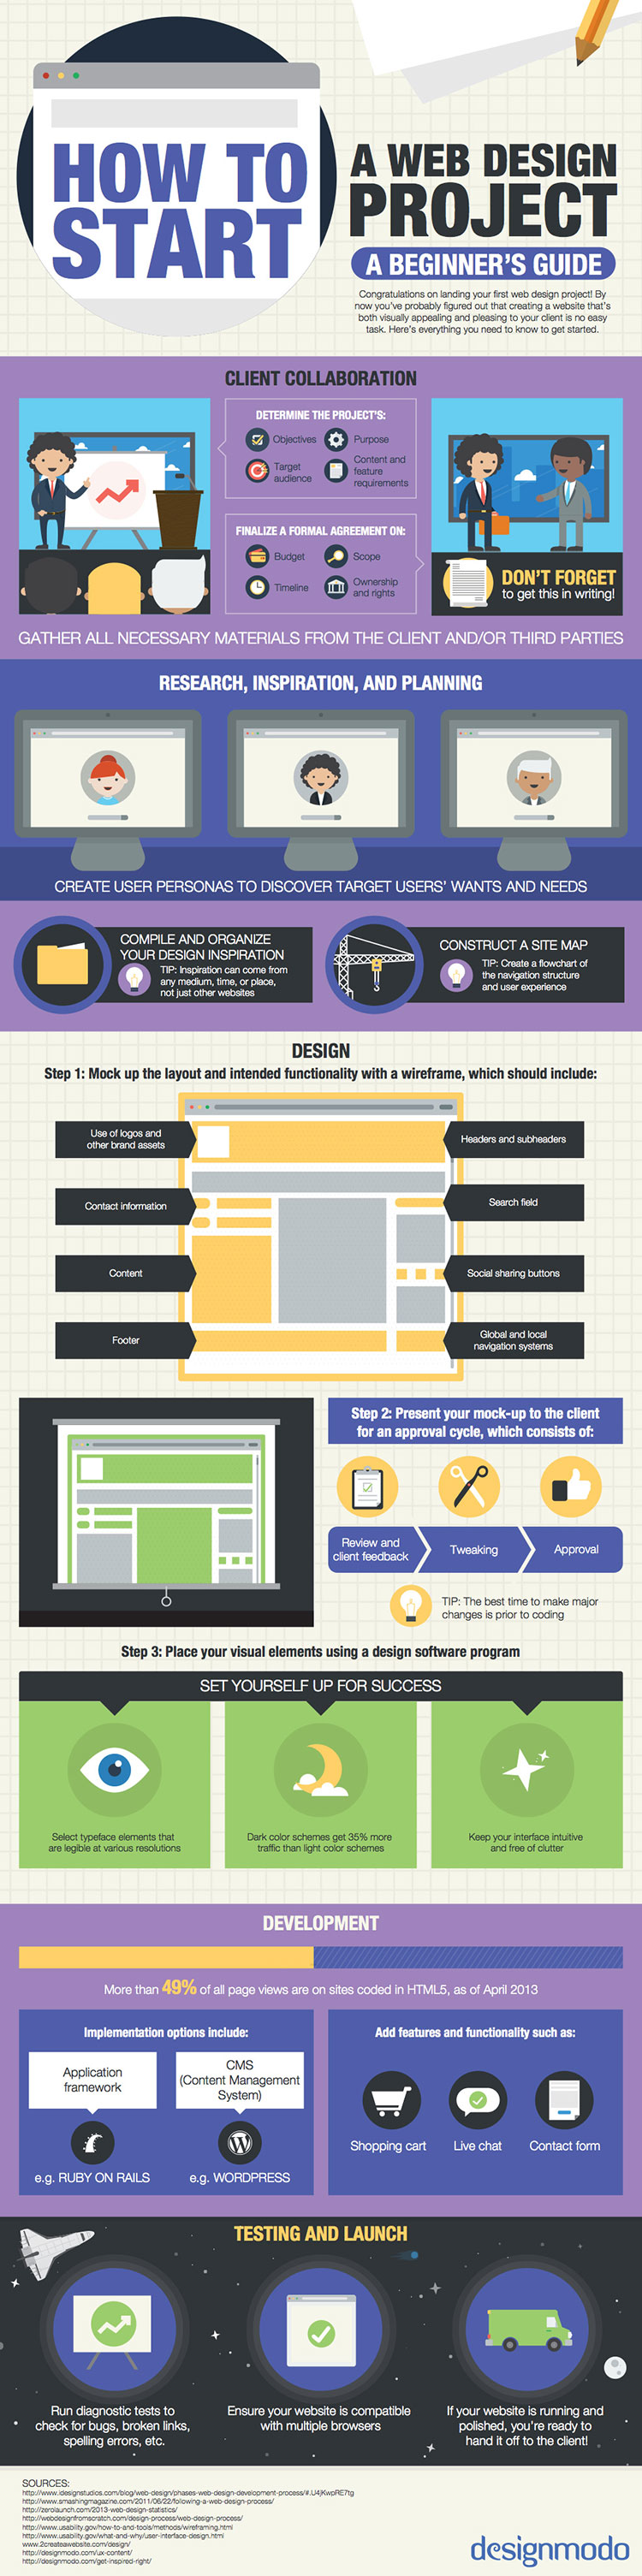 A Visual Guide to Starting a New Web Design Project